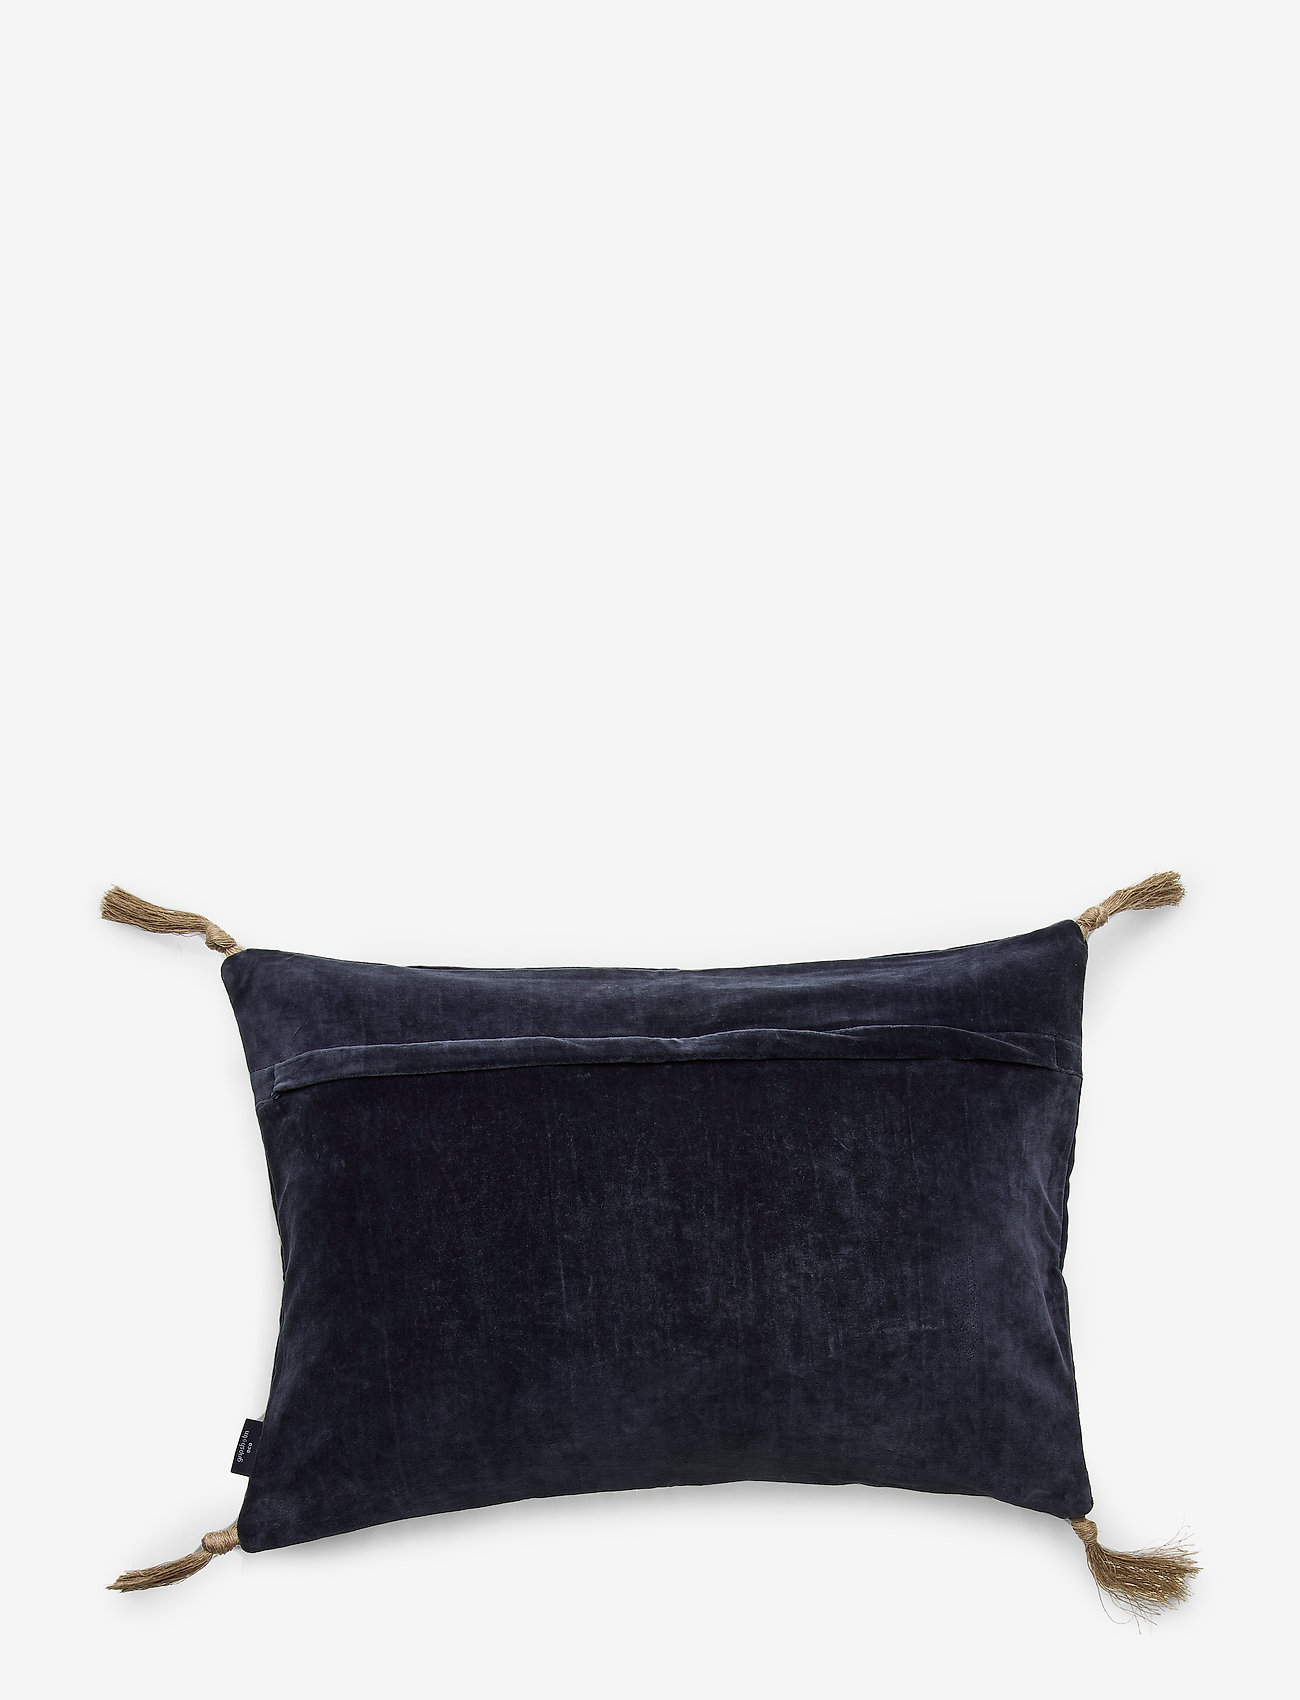 Cushion Cover August Gots (Ombre Blue) (39.99 €) - Gripsholm 2OgK1